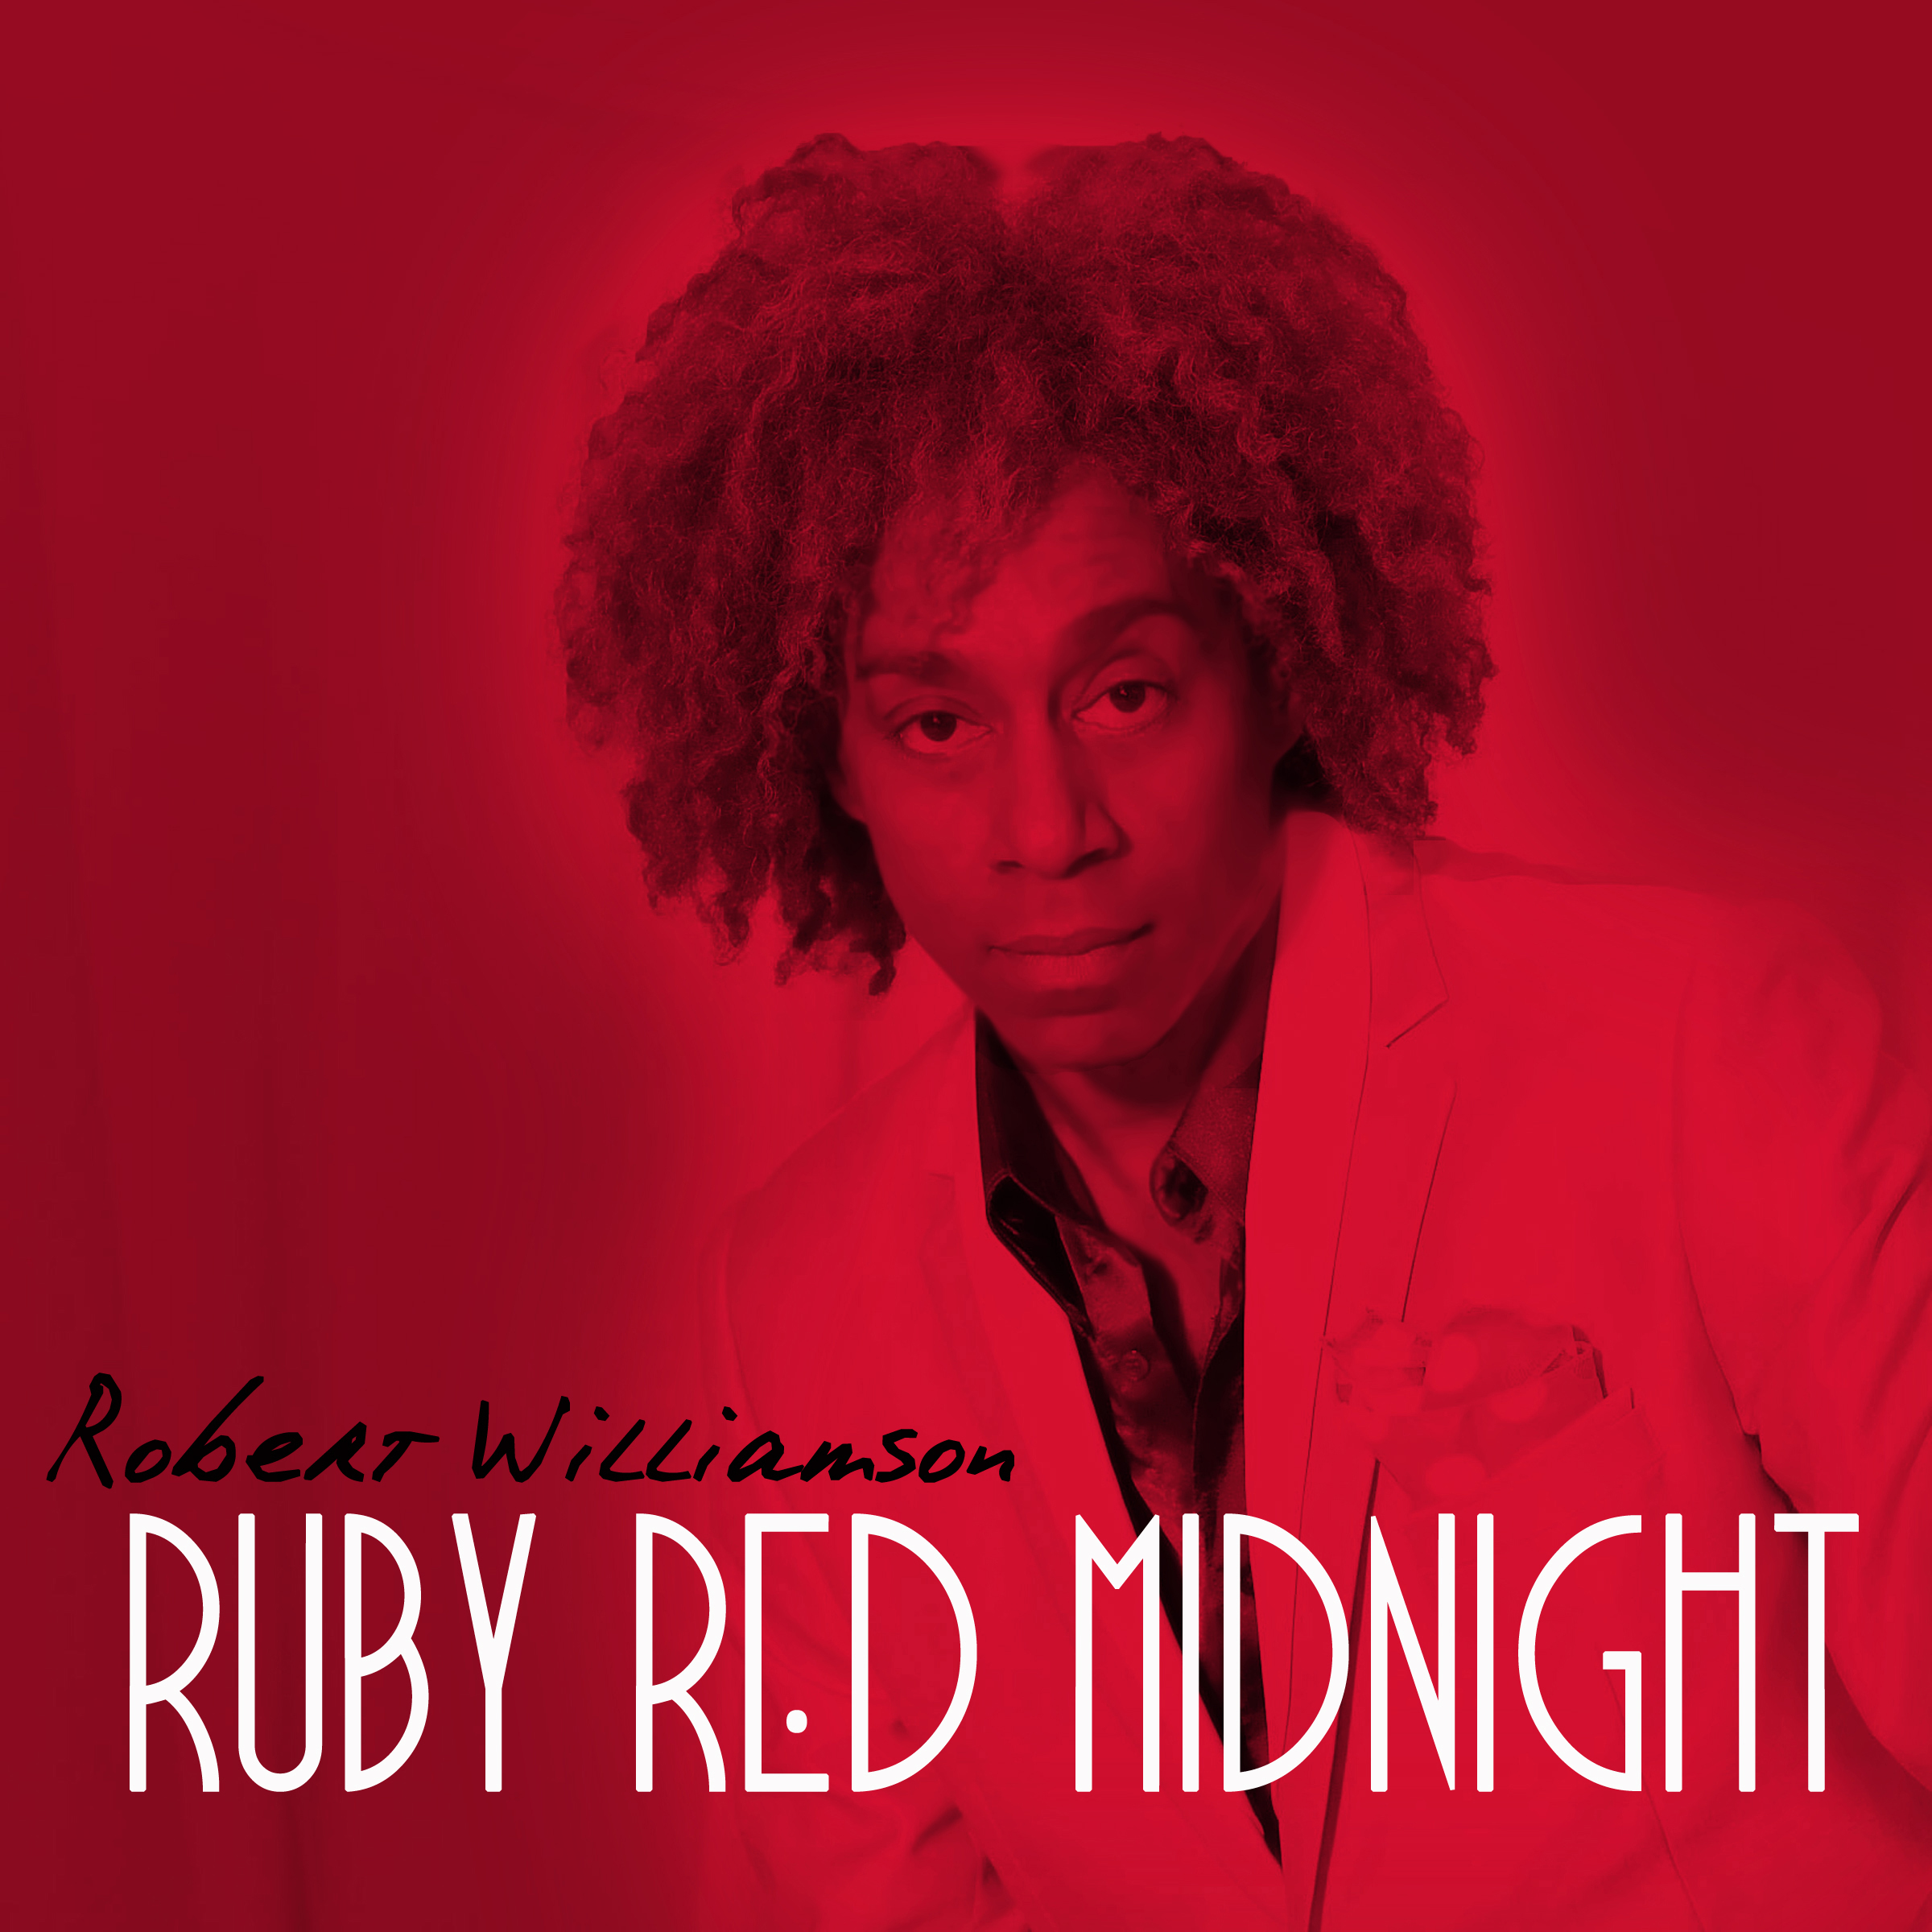 Robert Williamson, Ruby Red Midnight